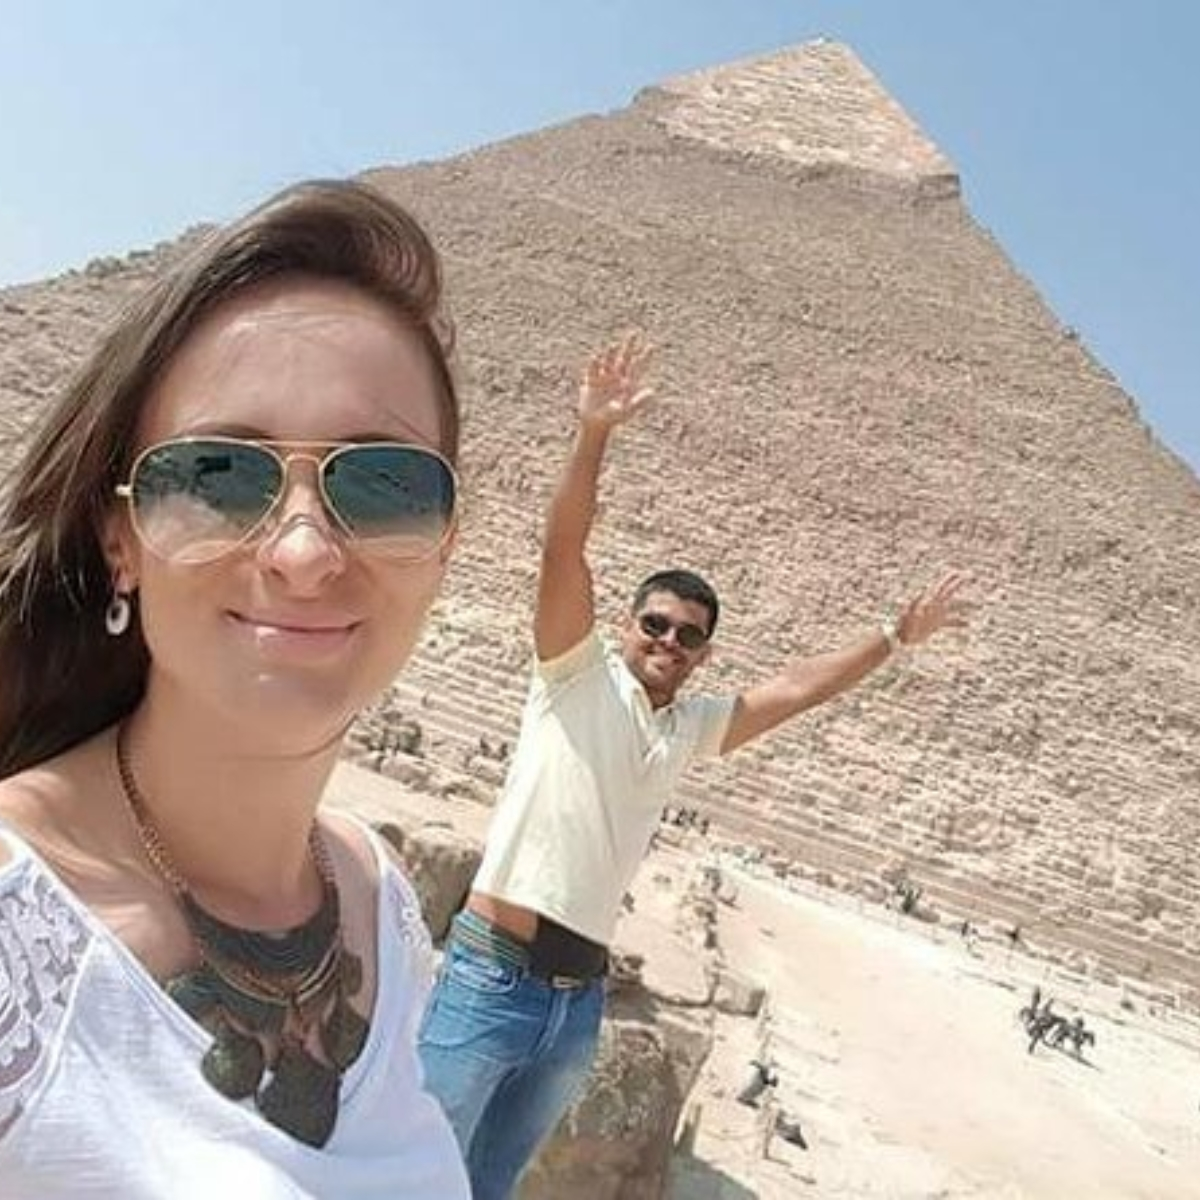 Best 2-Days in Egypt Images